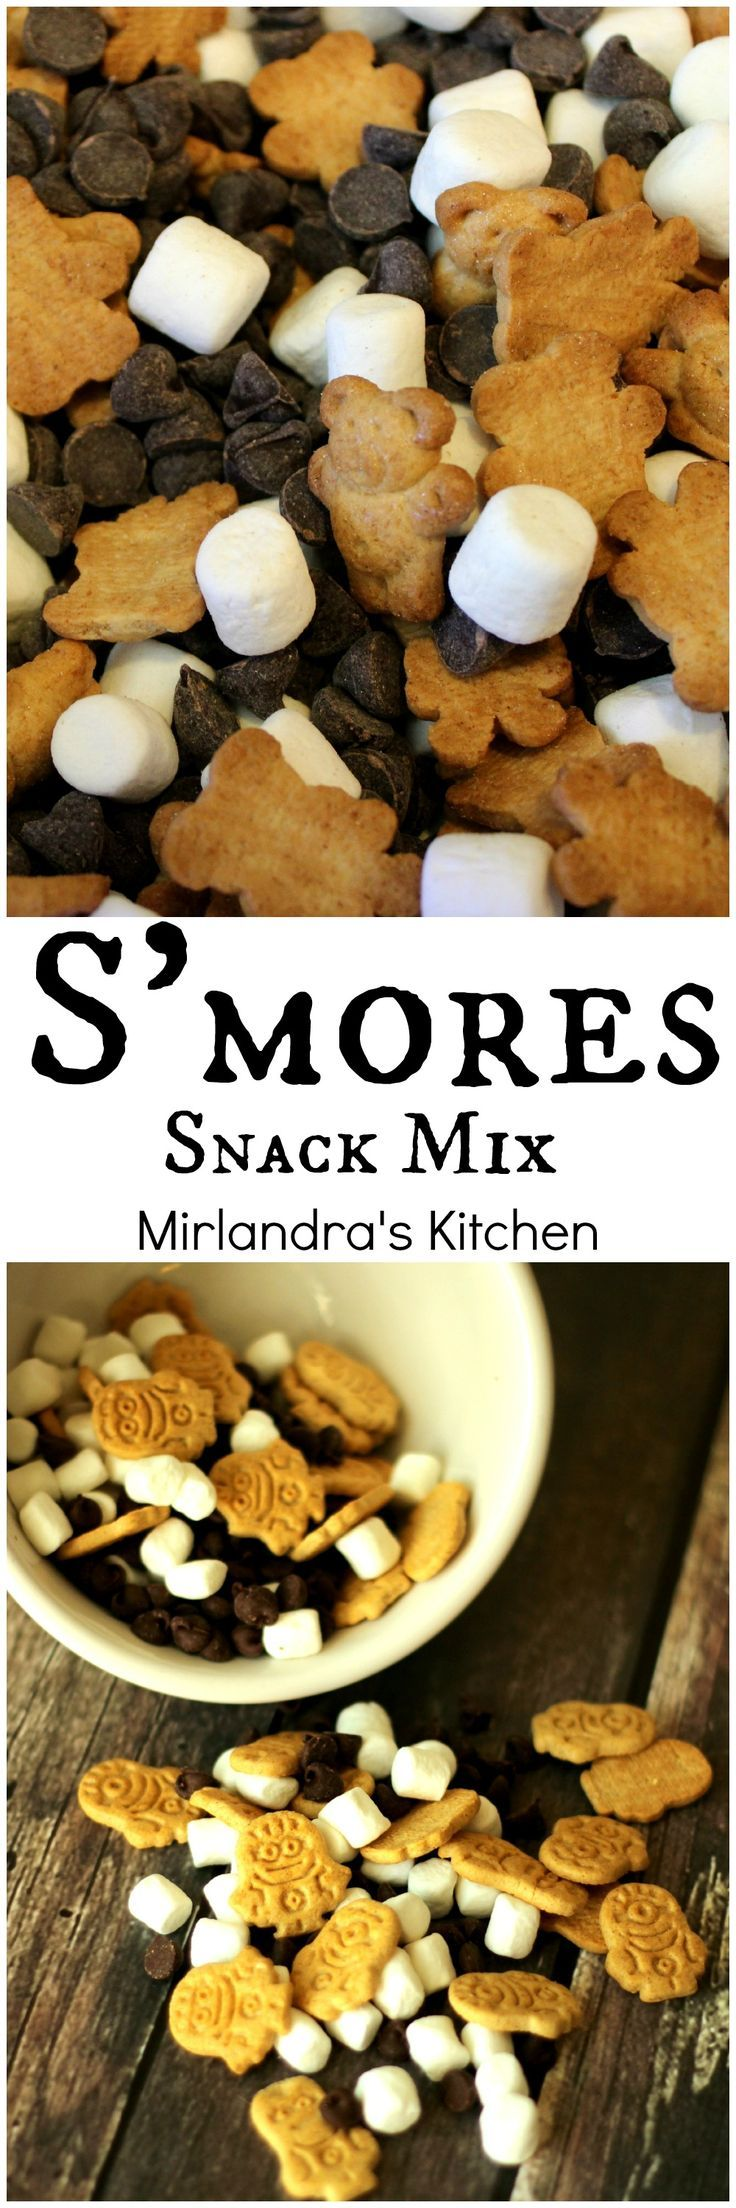 S'mores Snack Mix Recipe Snack recipes, Snacks, Food